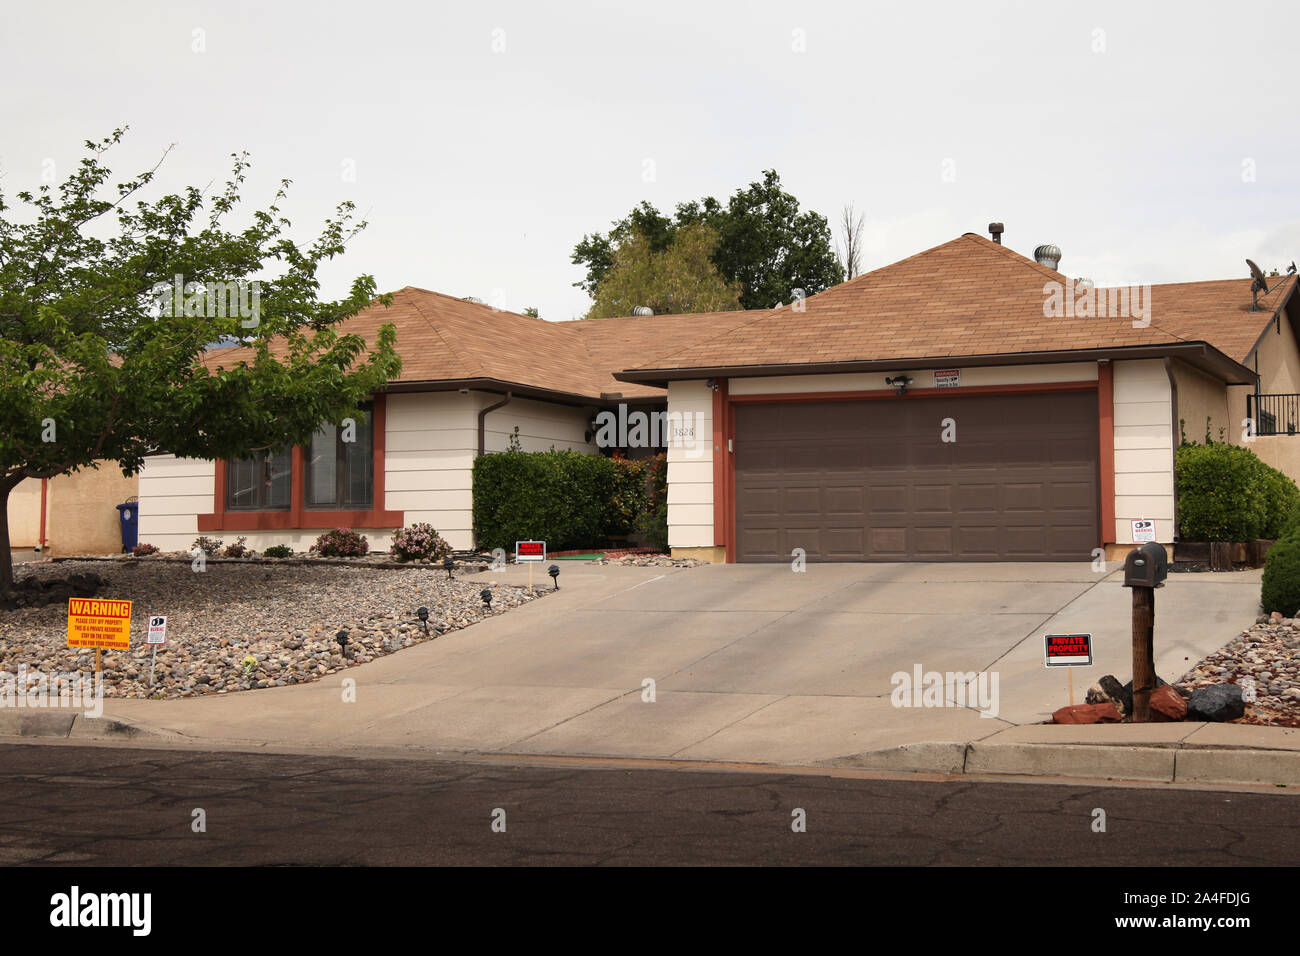 Walter White High Resolution Stock Photography And Images Alamy